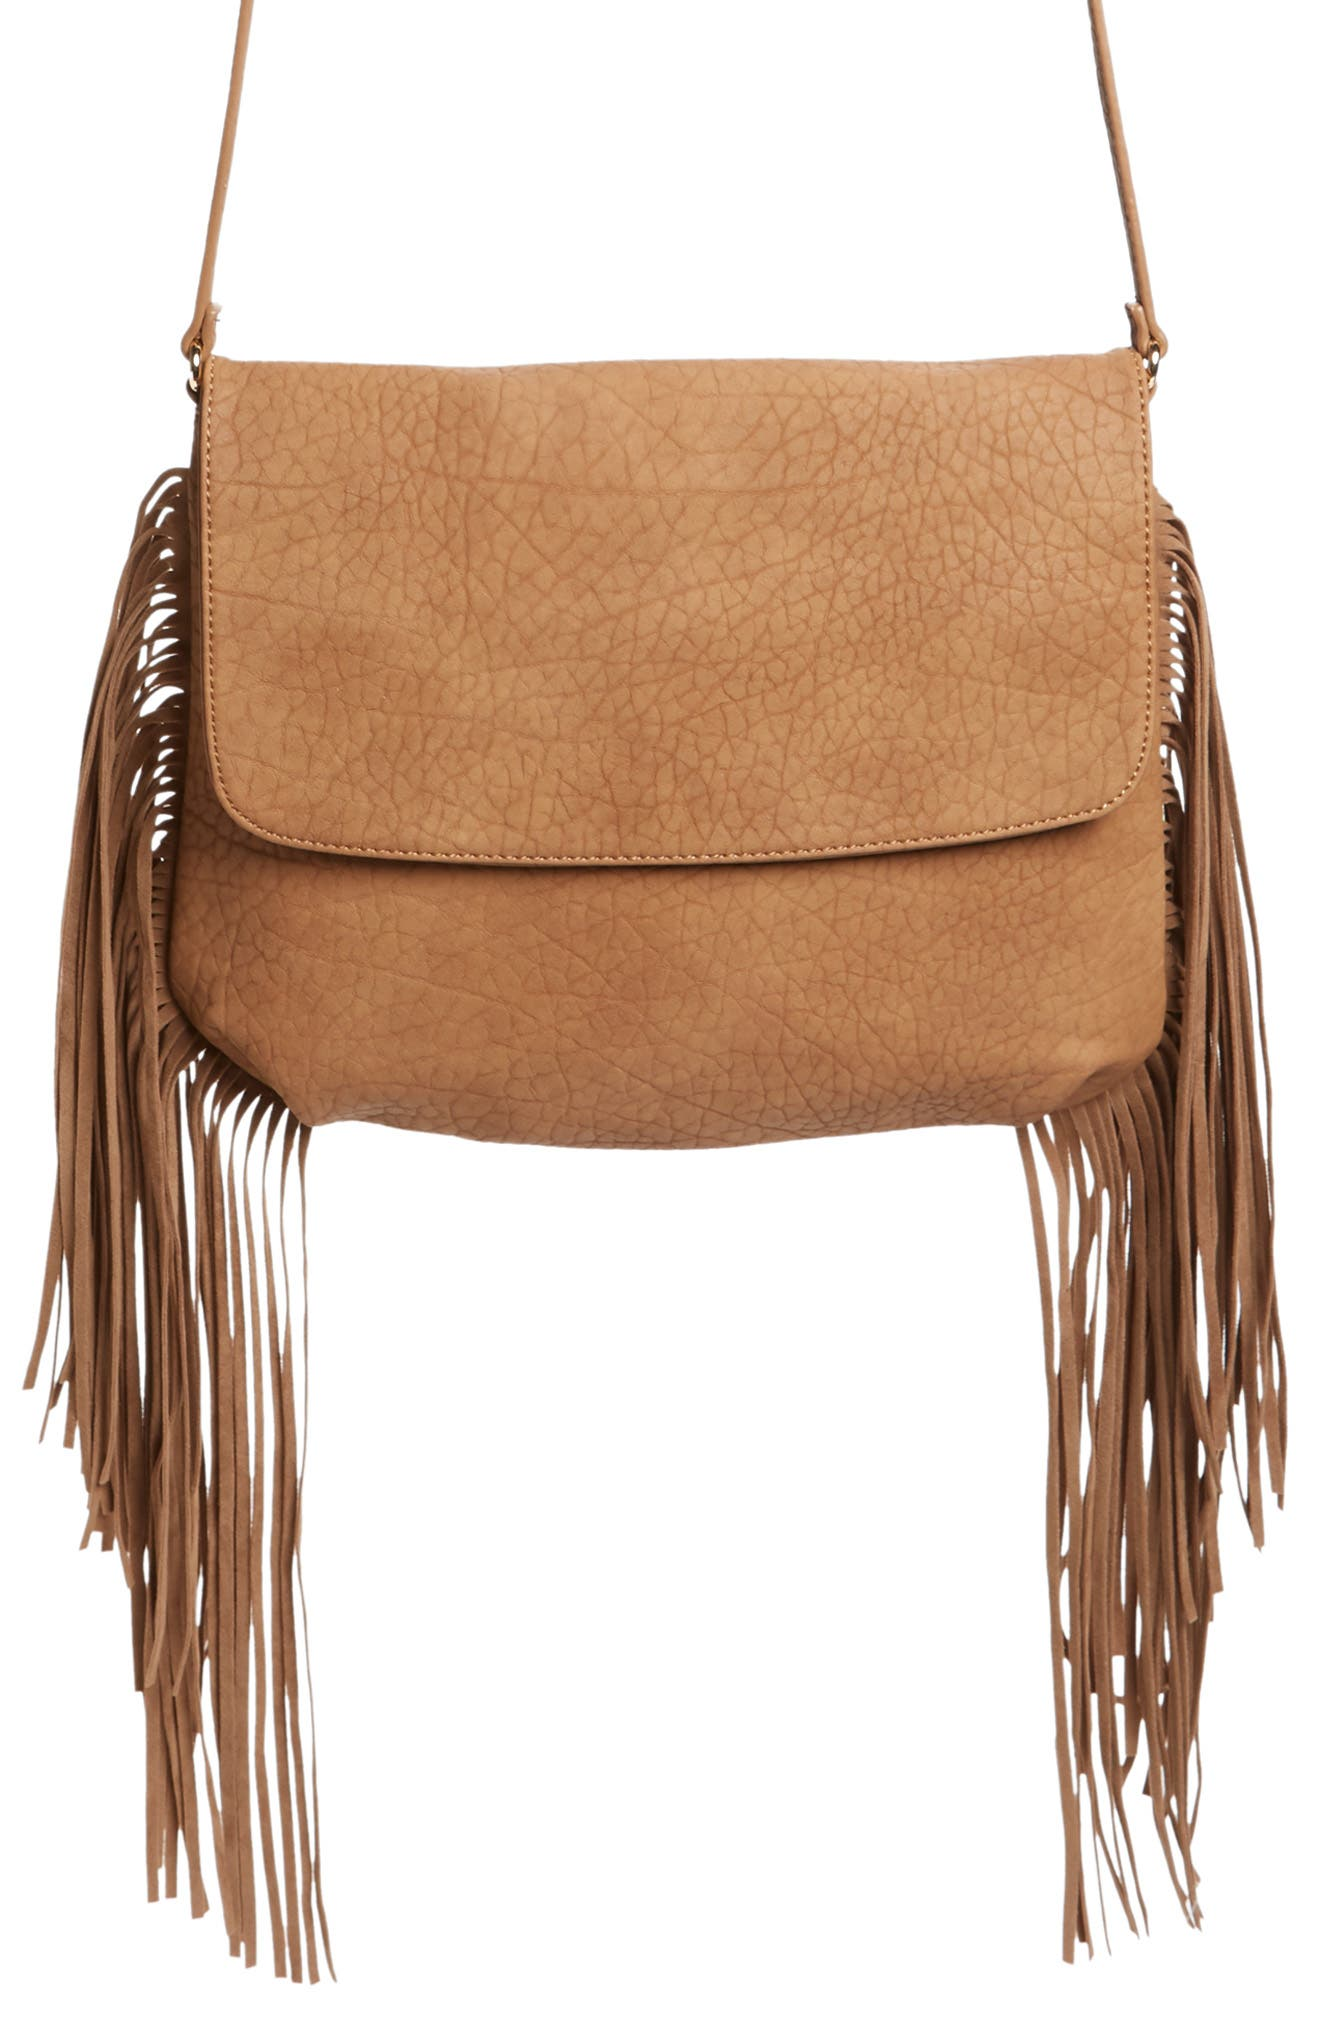 Maya Fringe Faux Leather Crossbody Bag,                         Main,                         color, Cognac